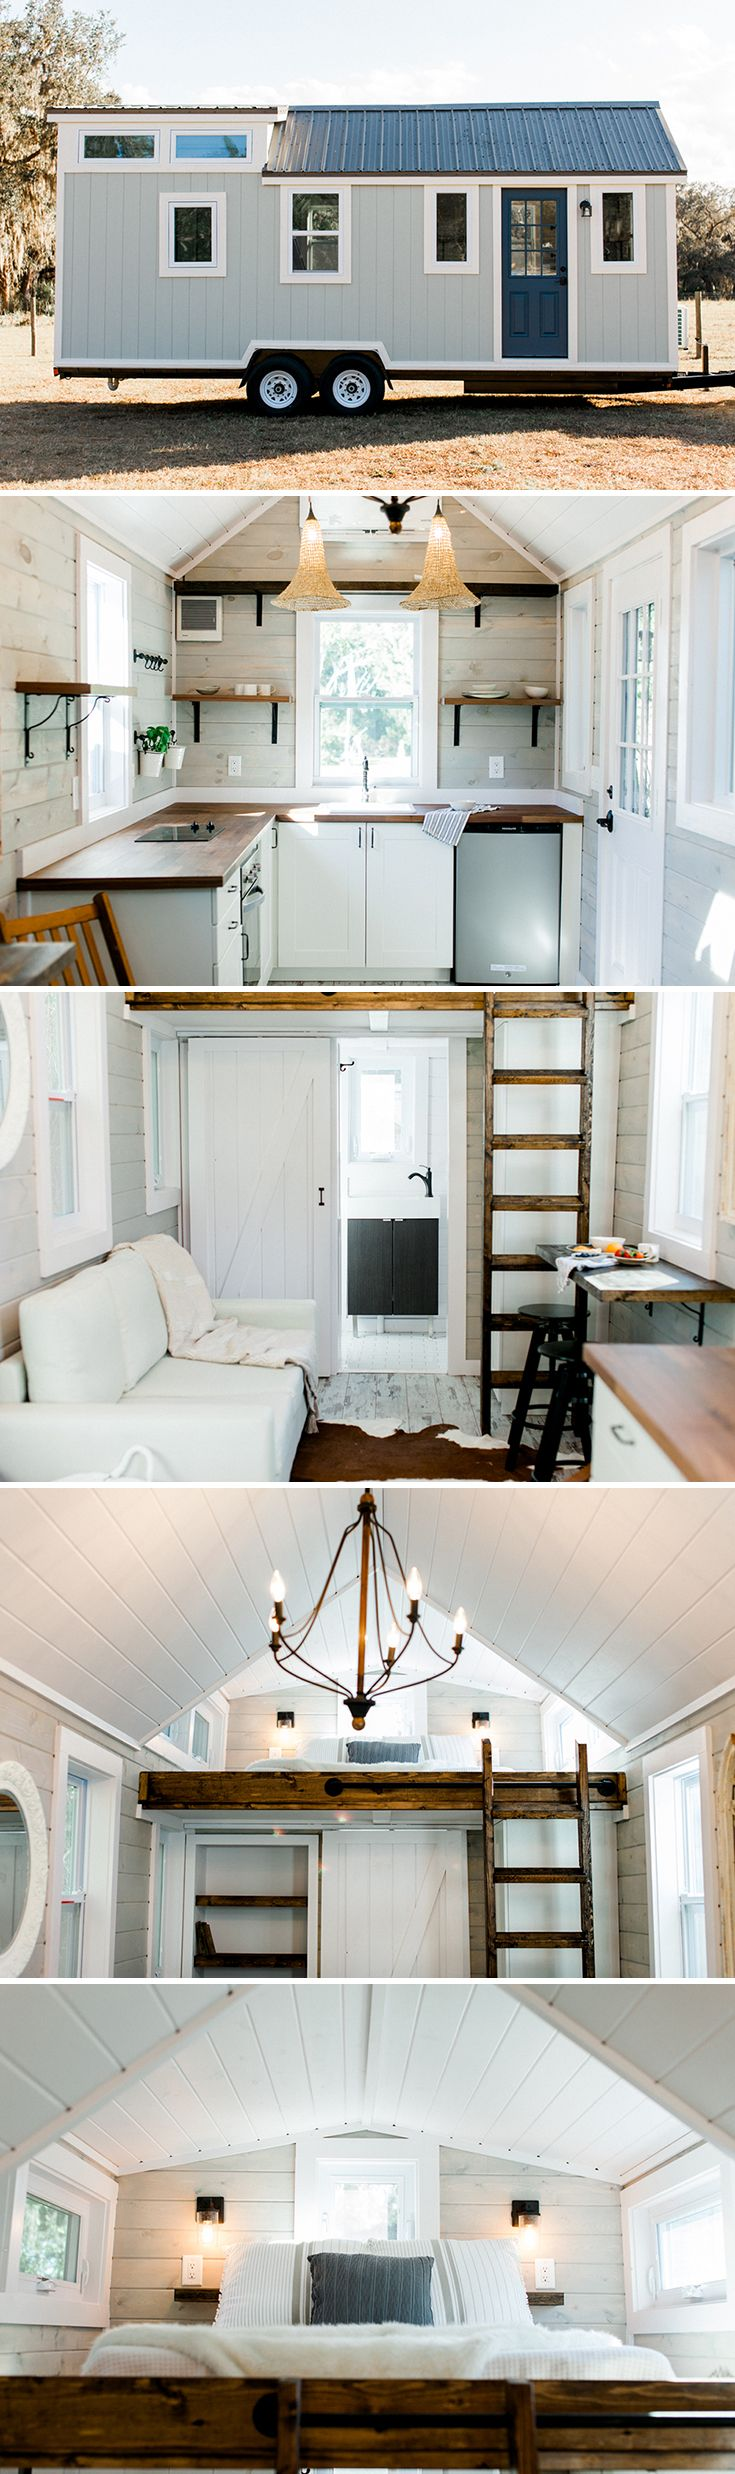 Best Ideas About Tiny Houses On Pinterest Tiny Homes Mini - Interiors of tiny houses